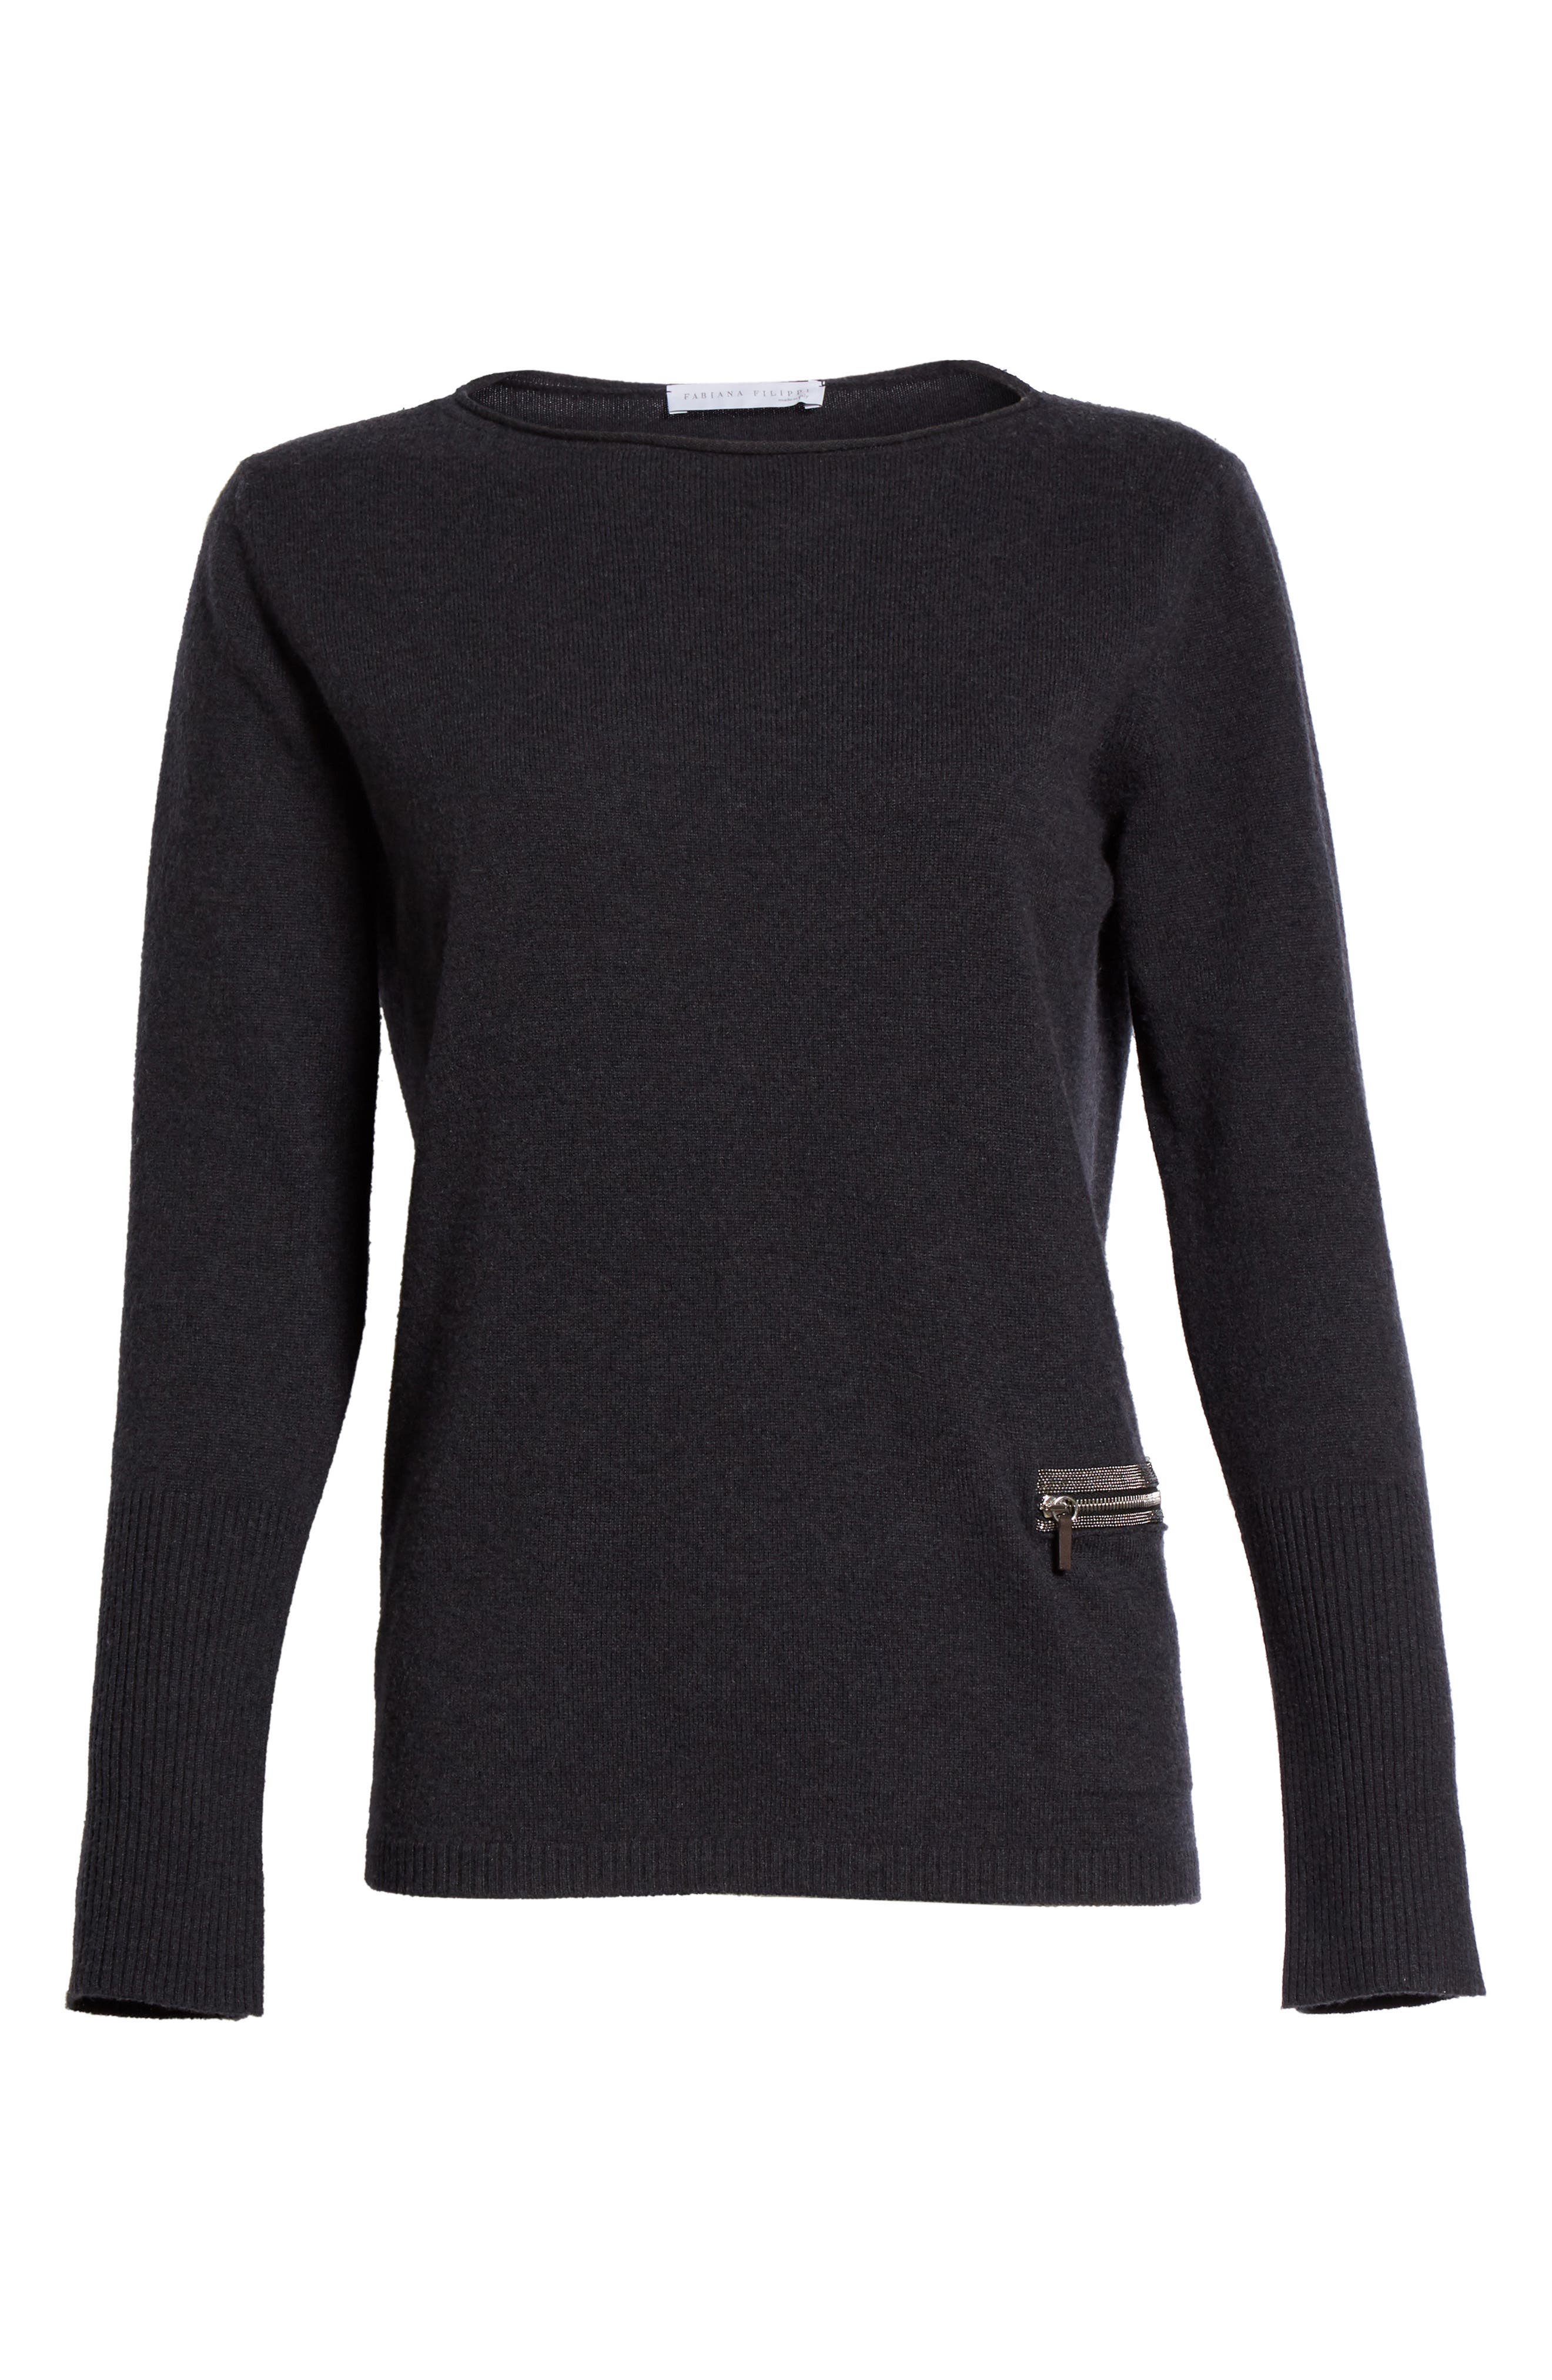 Wool, Silk & Cashmere Boatneck Sweater,                             Alternate thumbnail 4, color,                             Charcoal Navy